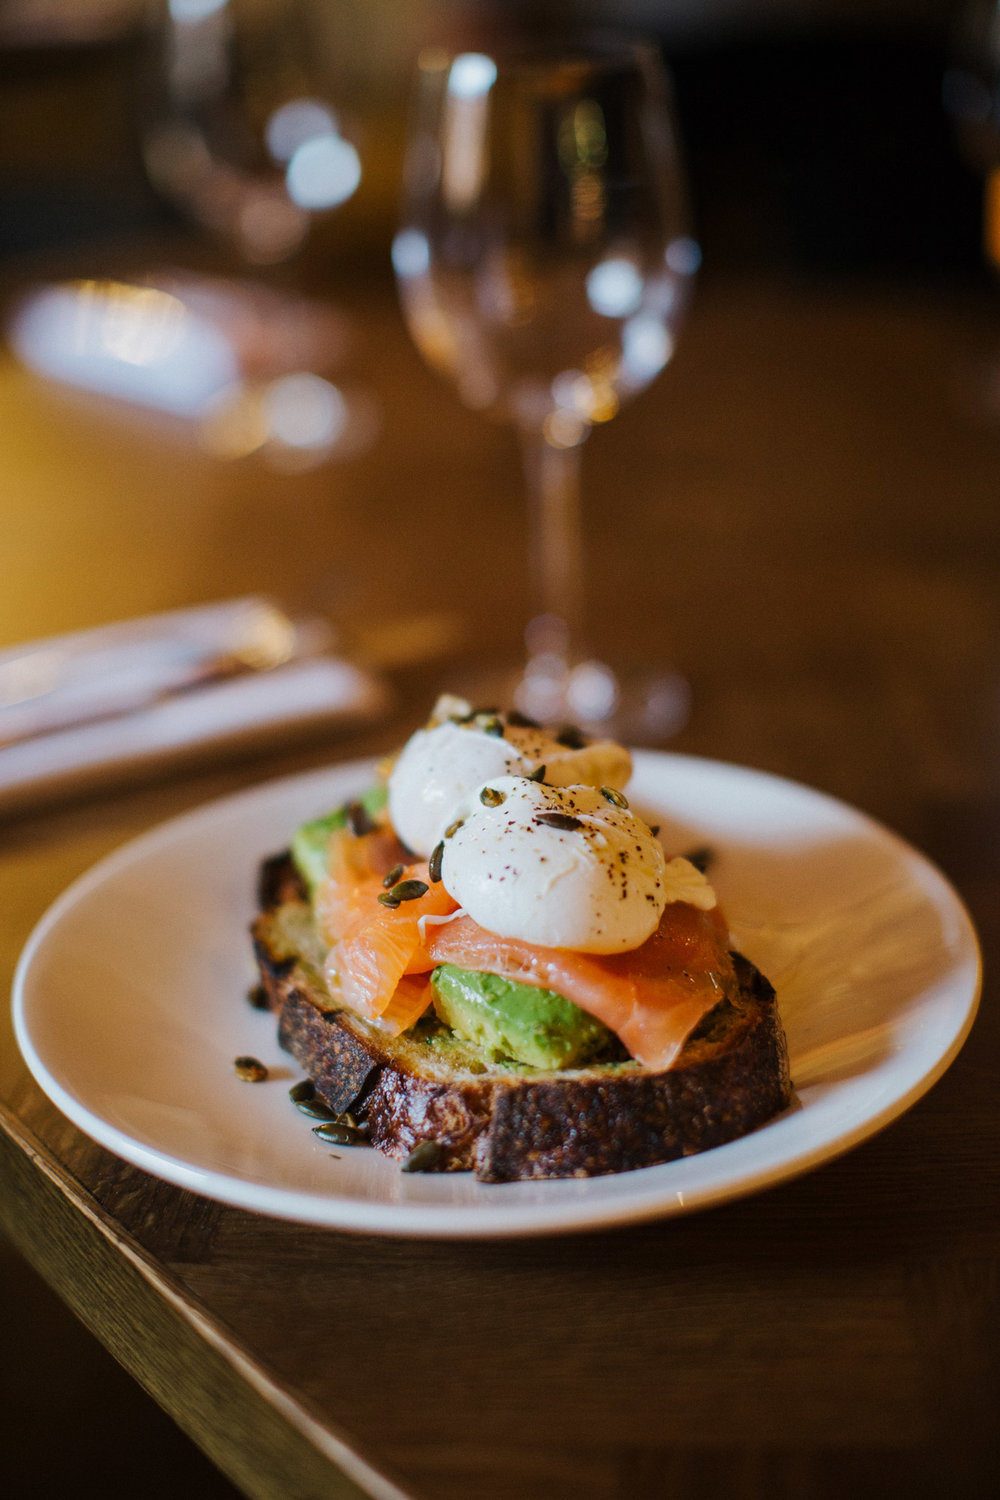 Poached Eggs with Avocado and Salmon from the brunch menu at The Globe pub and restaurant in Warwick.jpg